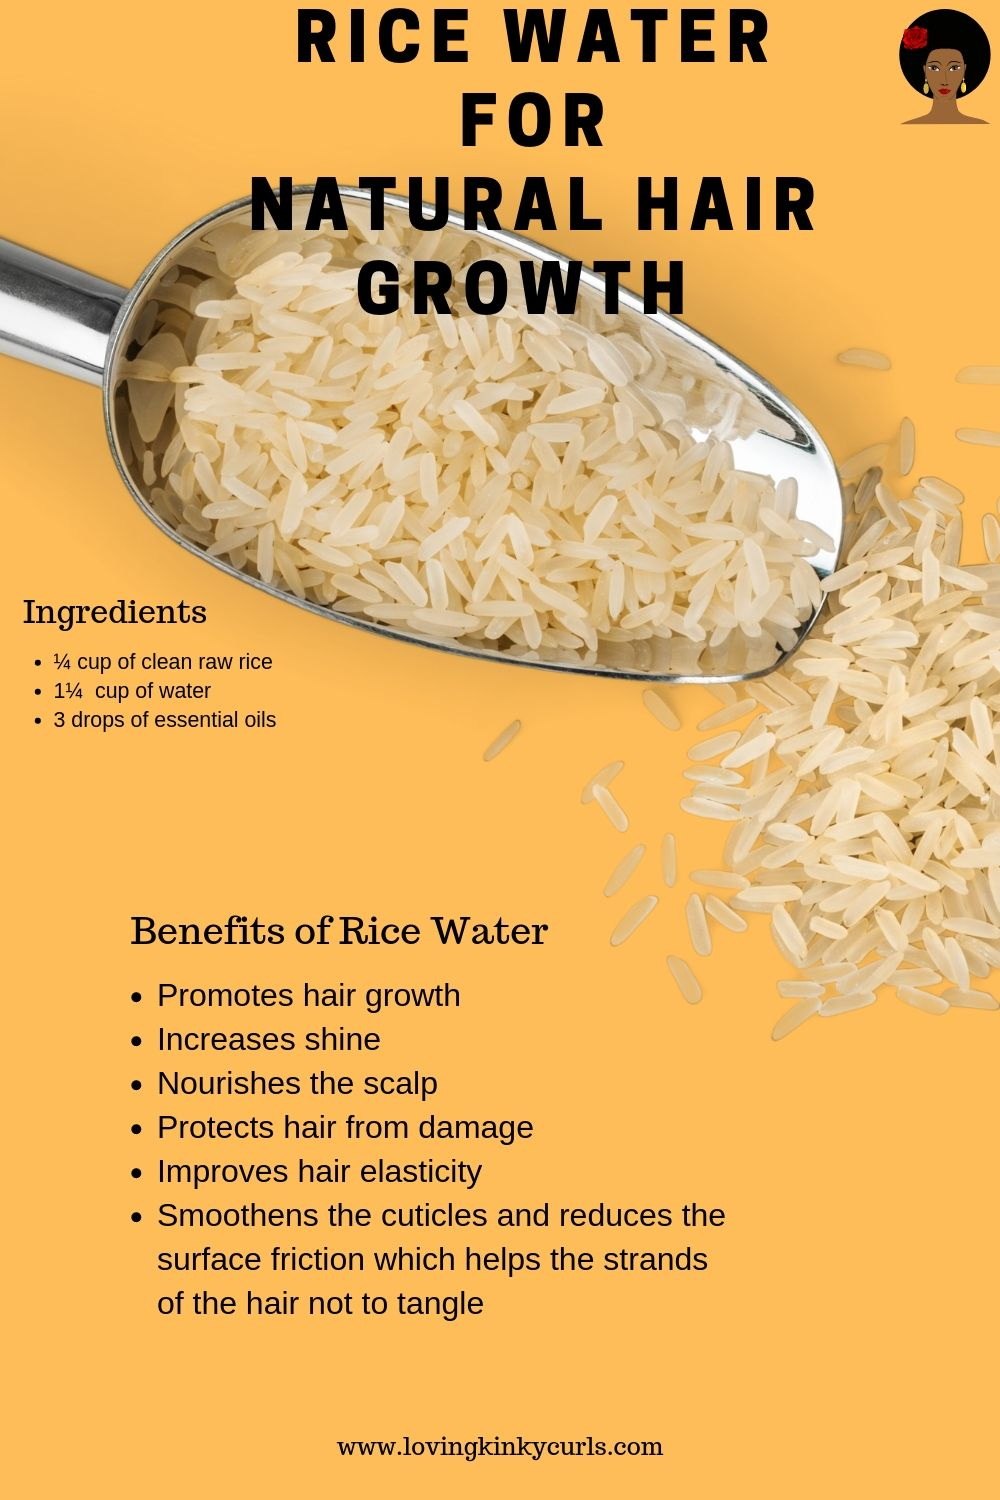 Rice Water for Natural Hair Growth #naturalhaircareproducts